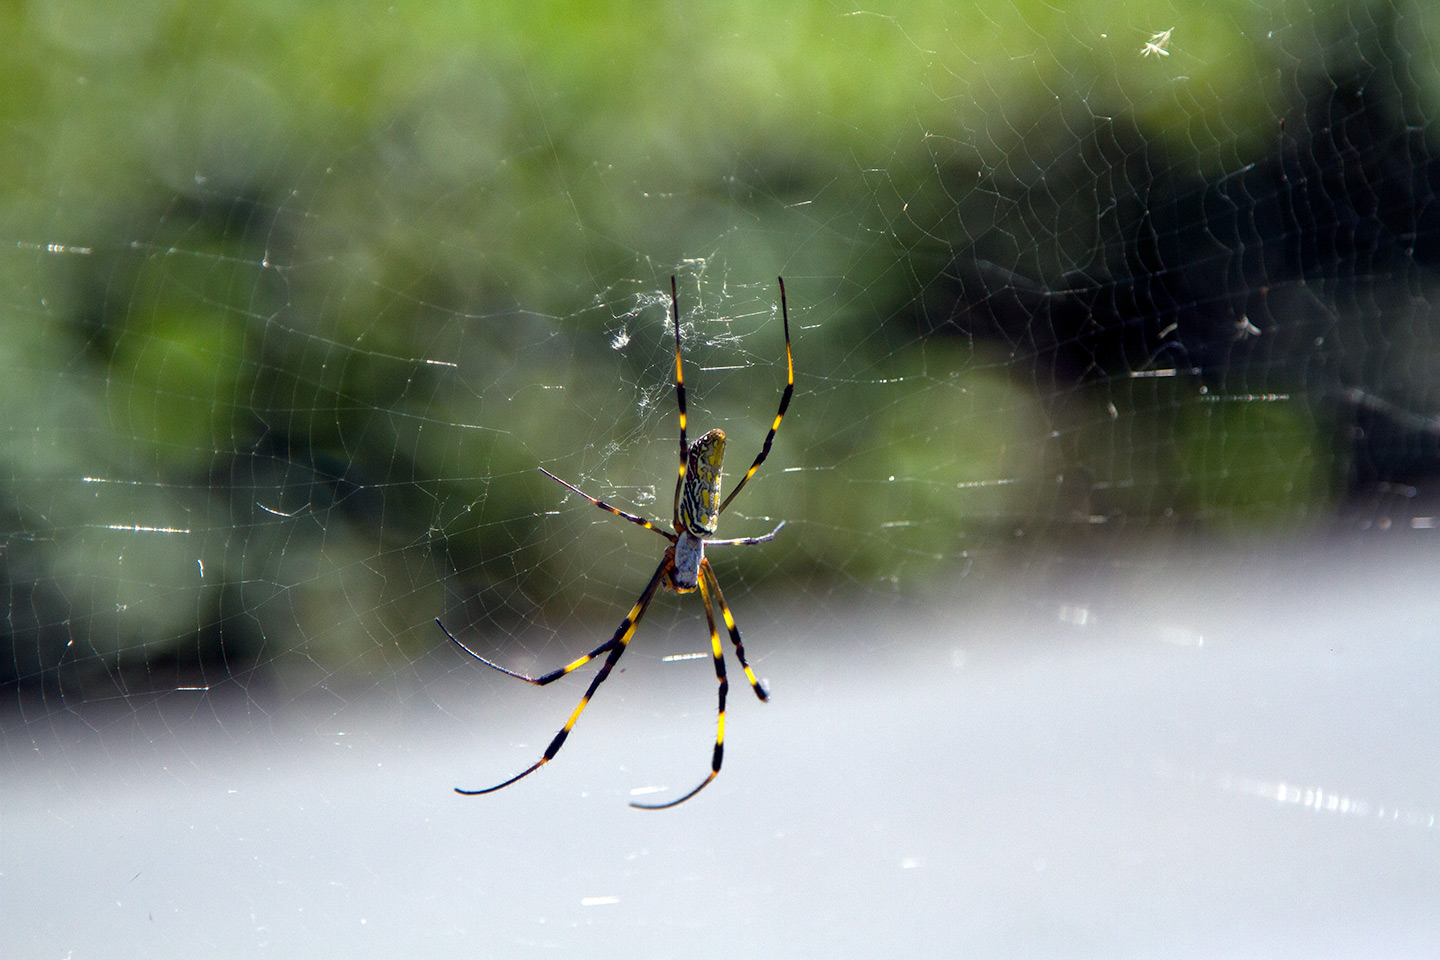 Japanese spider perched on web